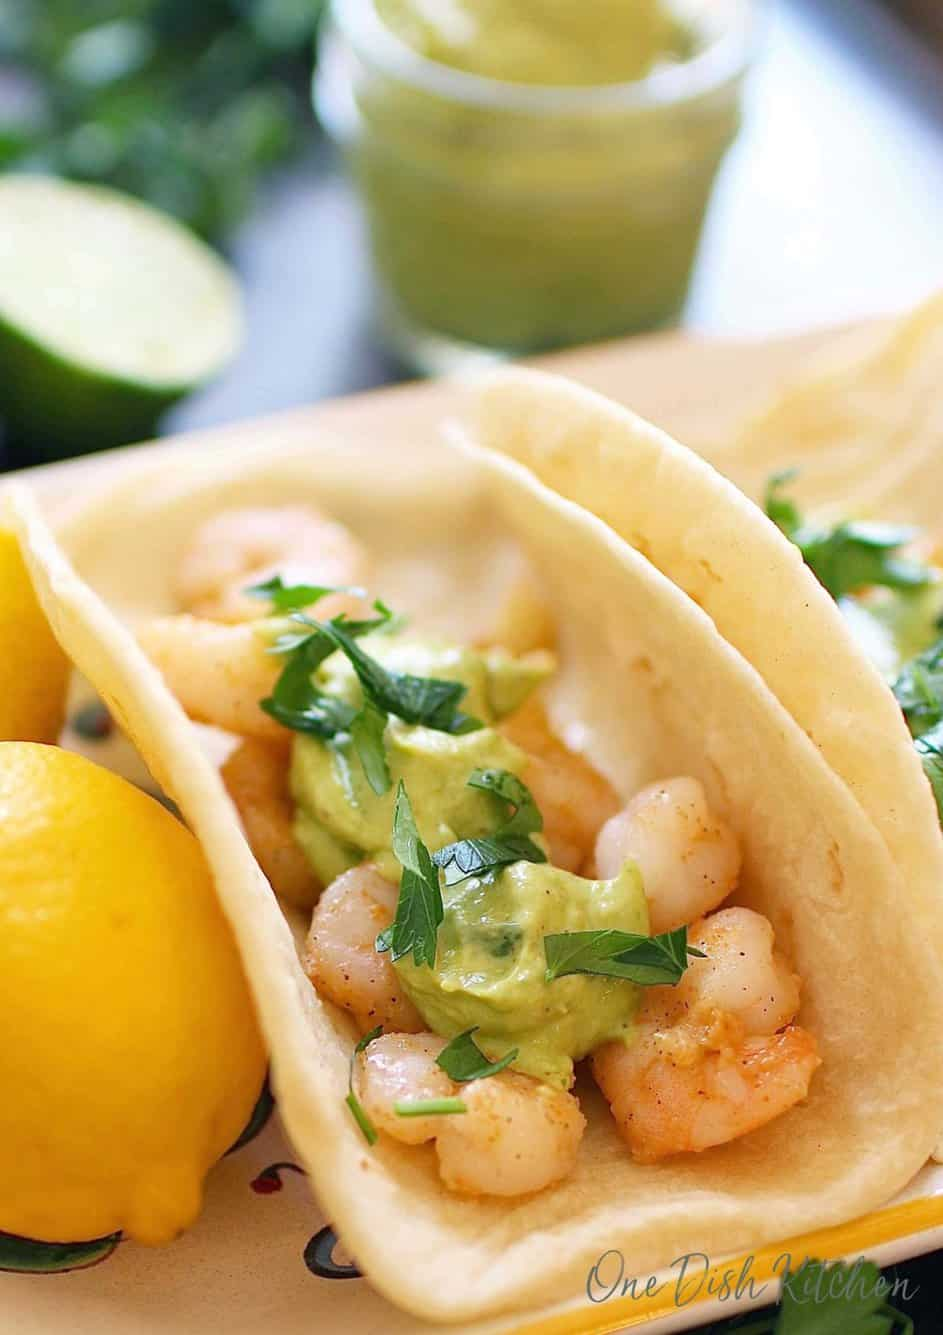 A shrimp taco topped with avocado sauce and cilantro on a plate next to a whole lemon and a jar of avocado puree in the background